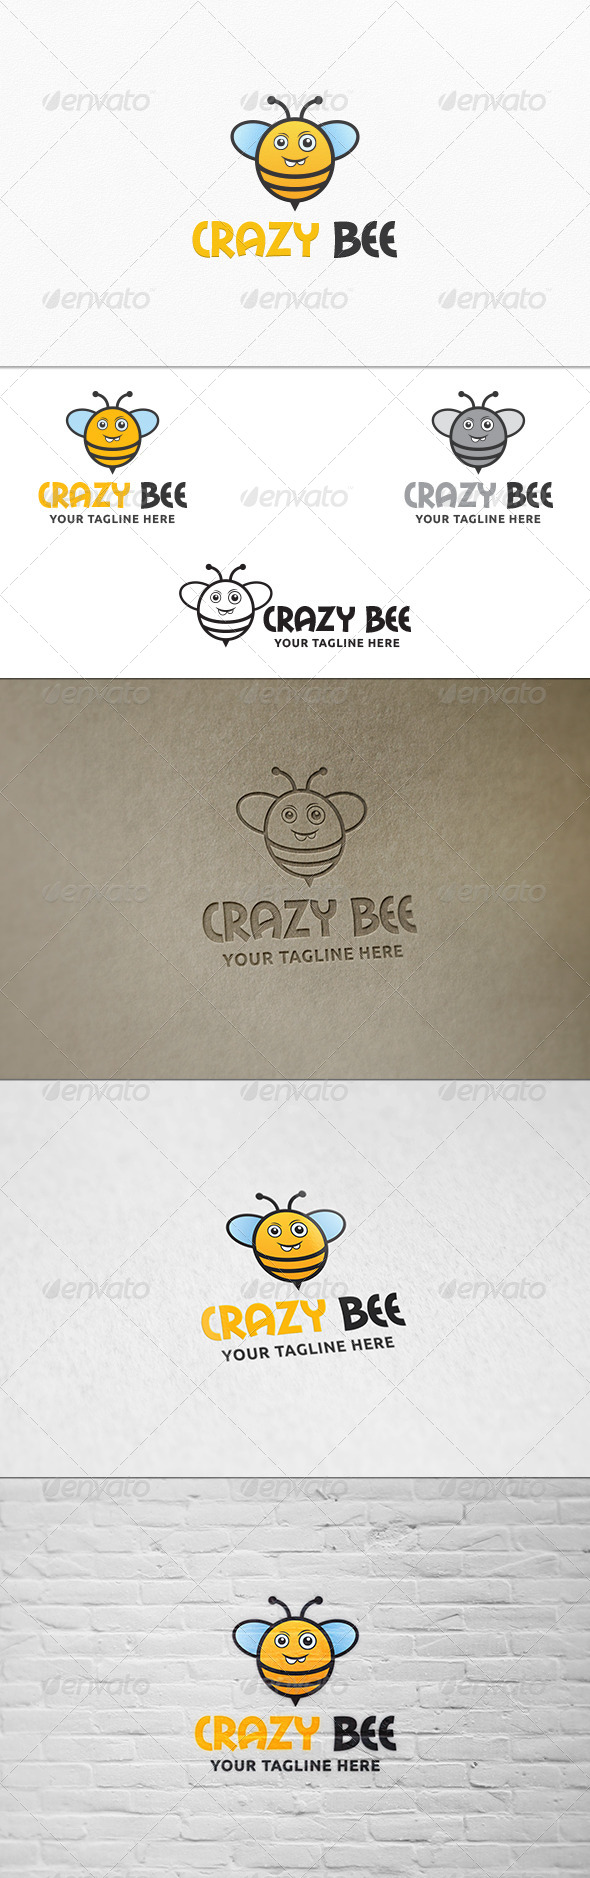 GraphicRiver Crazy Bee Logo Template 7423690